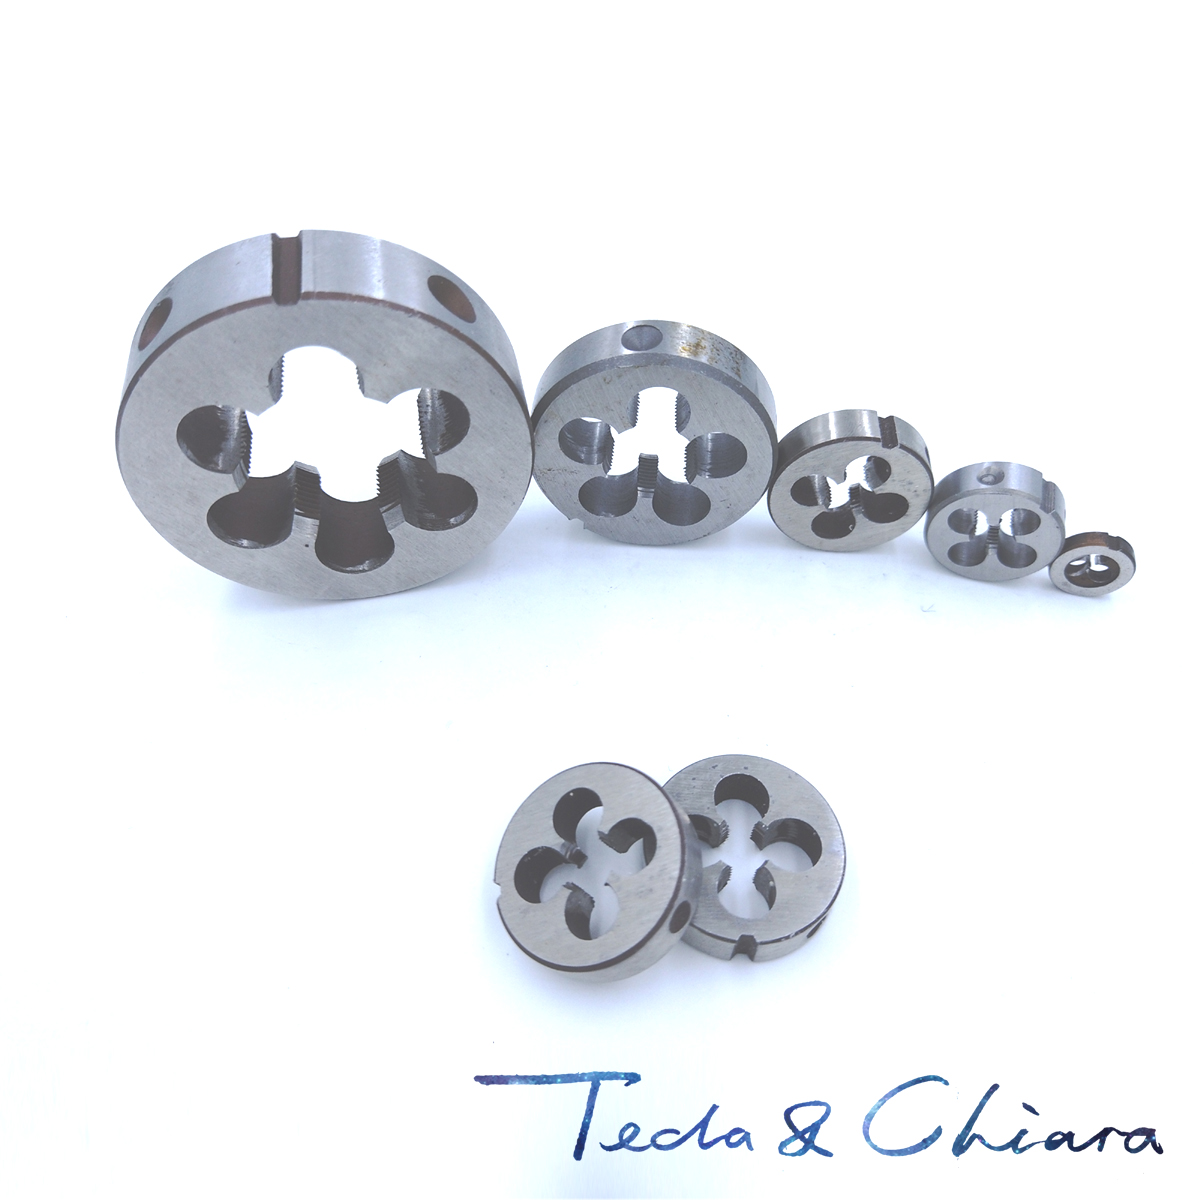 1Pc 5/16-28 5/16-32 5/16-36 5/16-40 UN UNEF UNS Right Hand Die TPI Threading Tools For Mold Machining 5/16 5/16